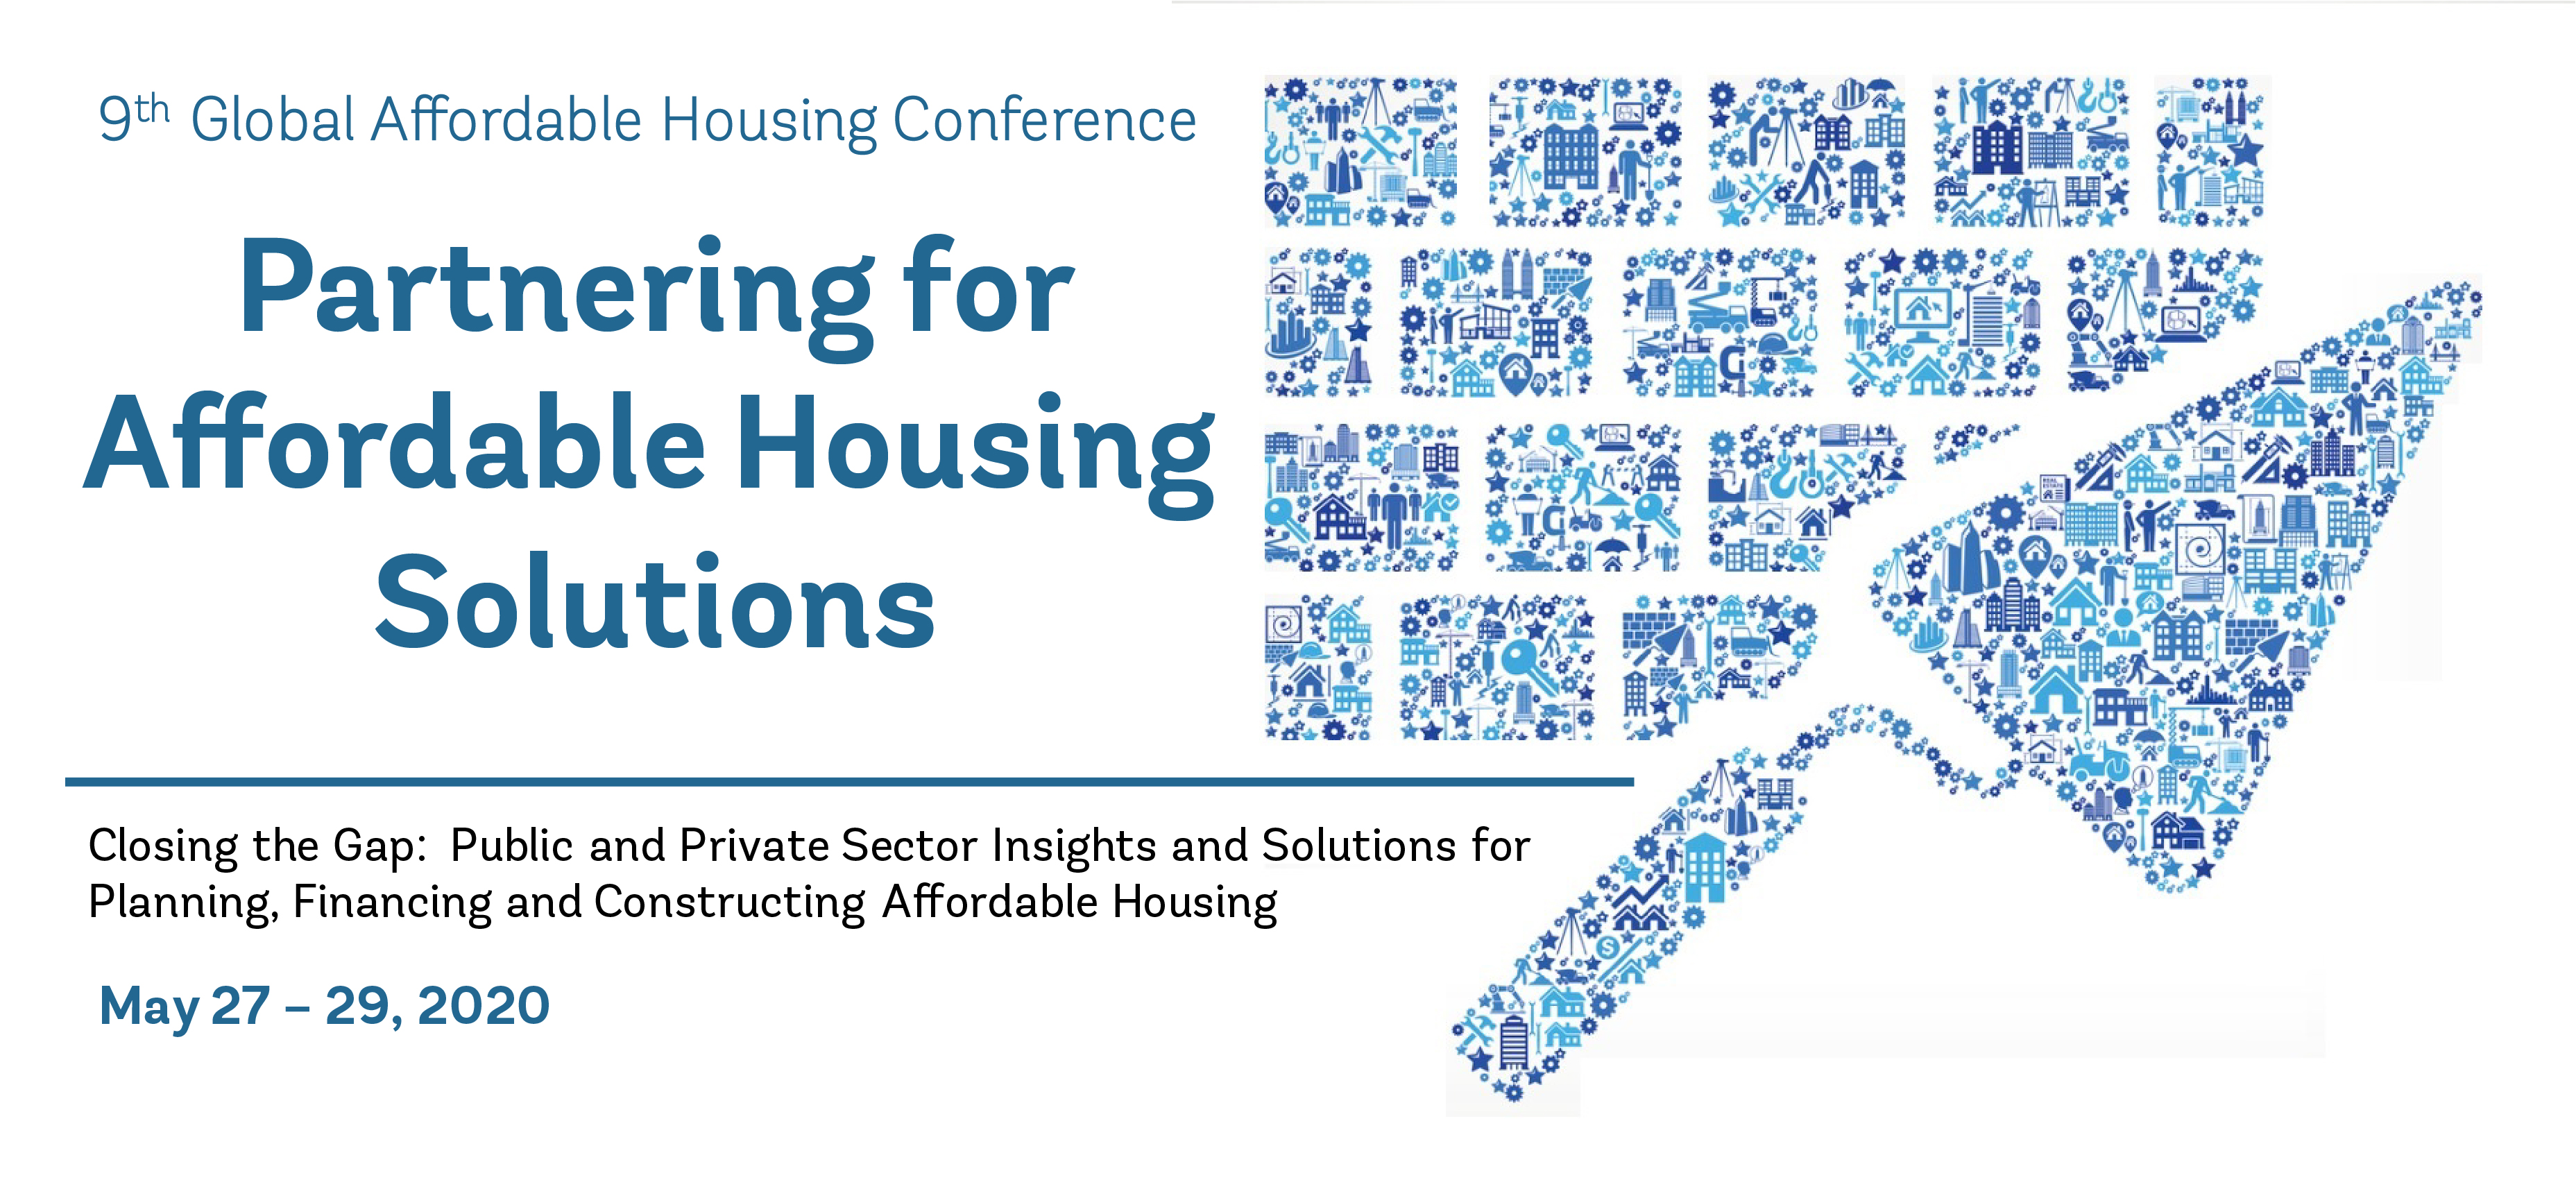 Washington Dc Events May 2020.9th Global Affordable Housing Conference